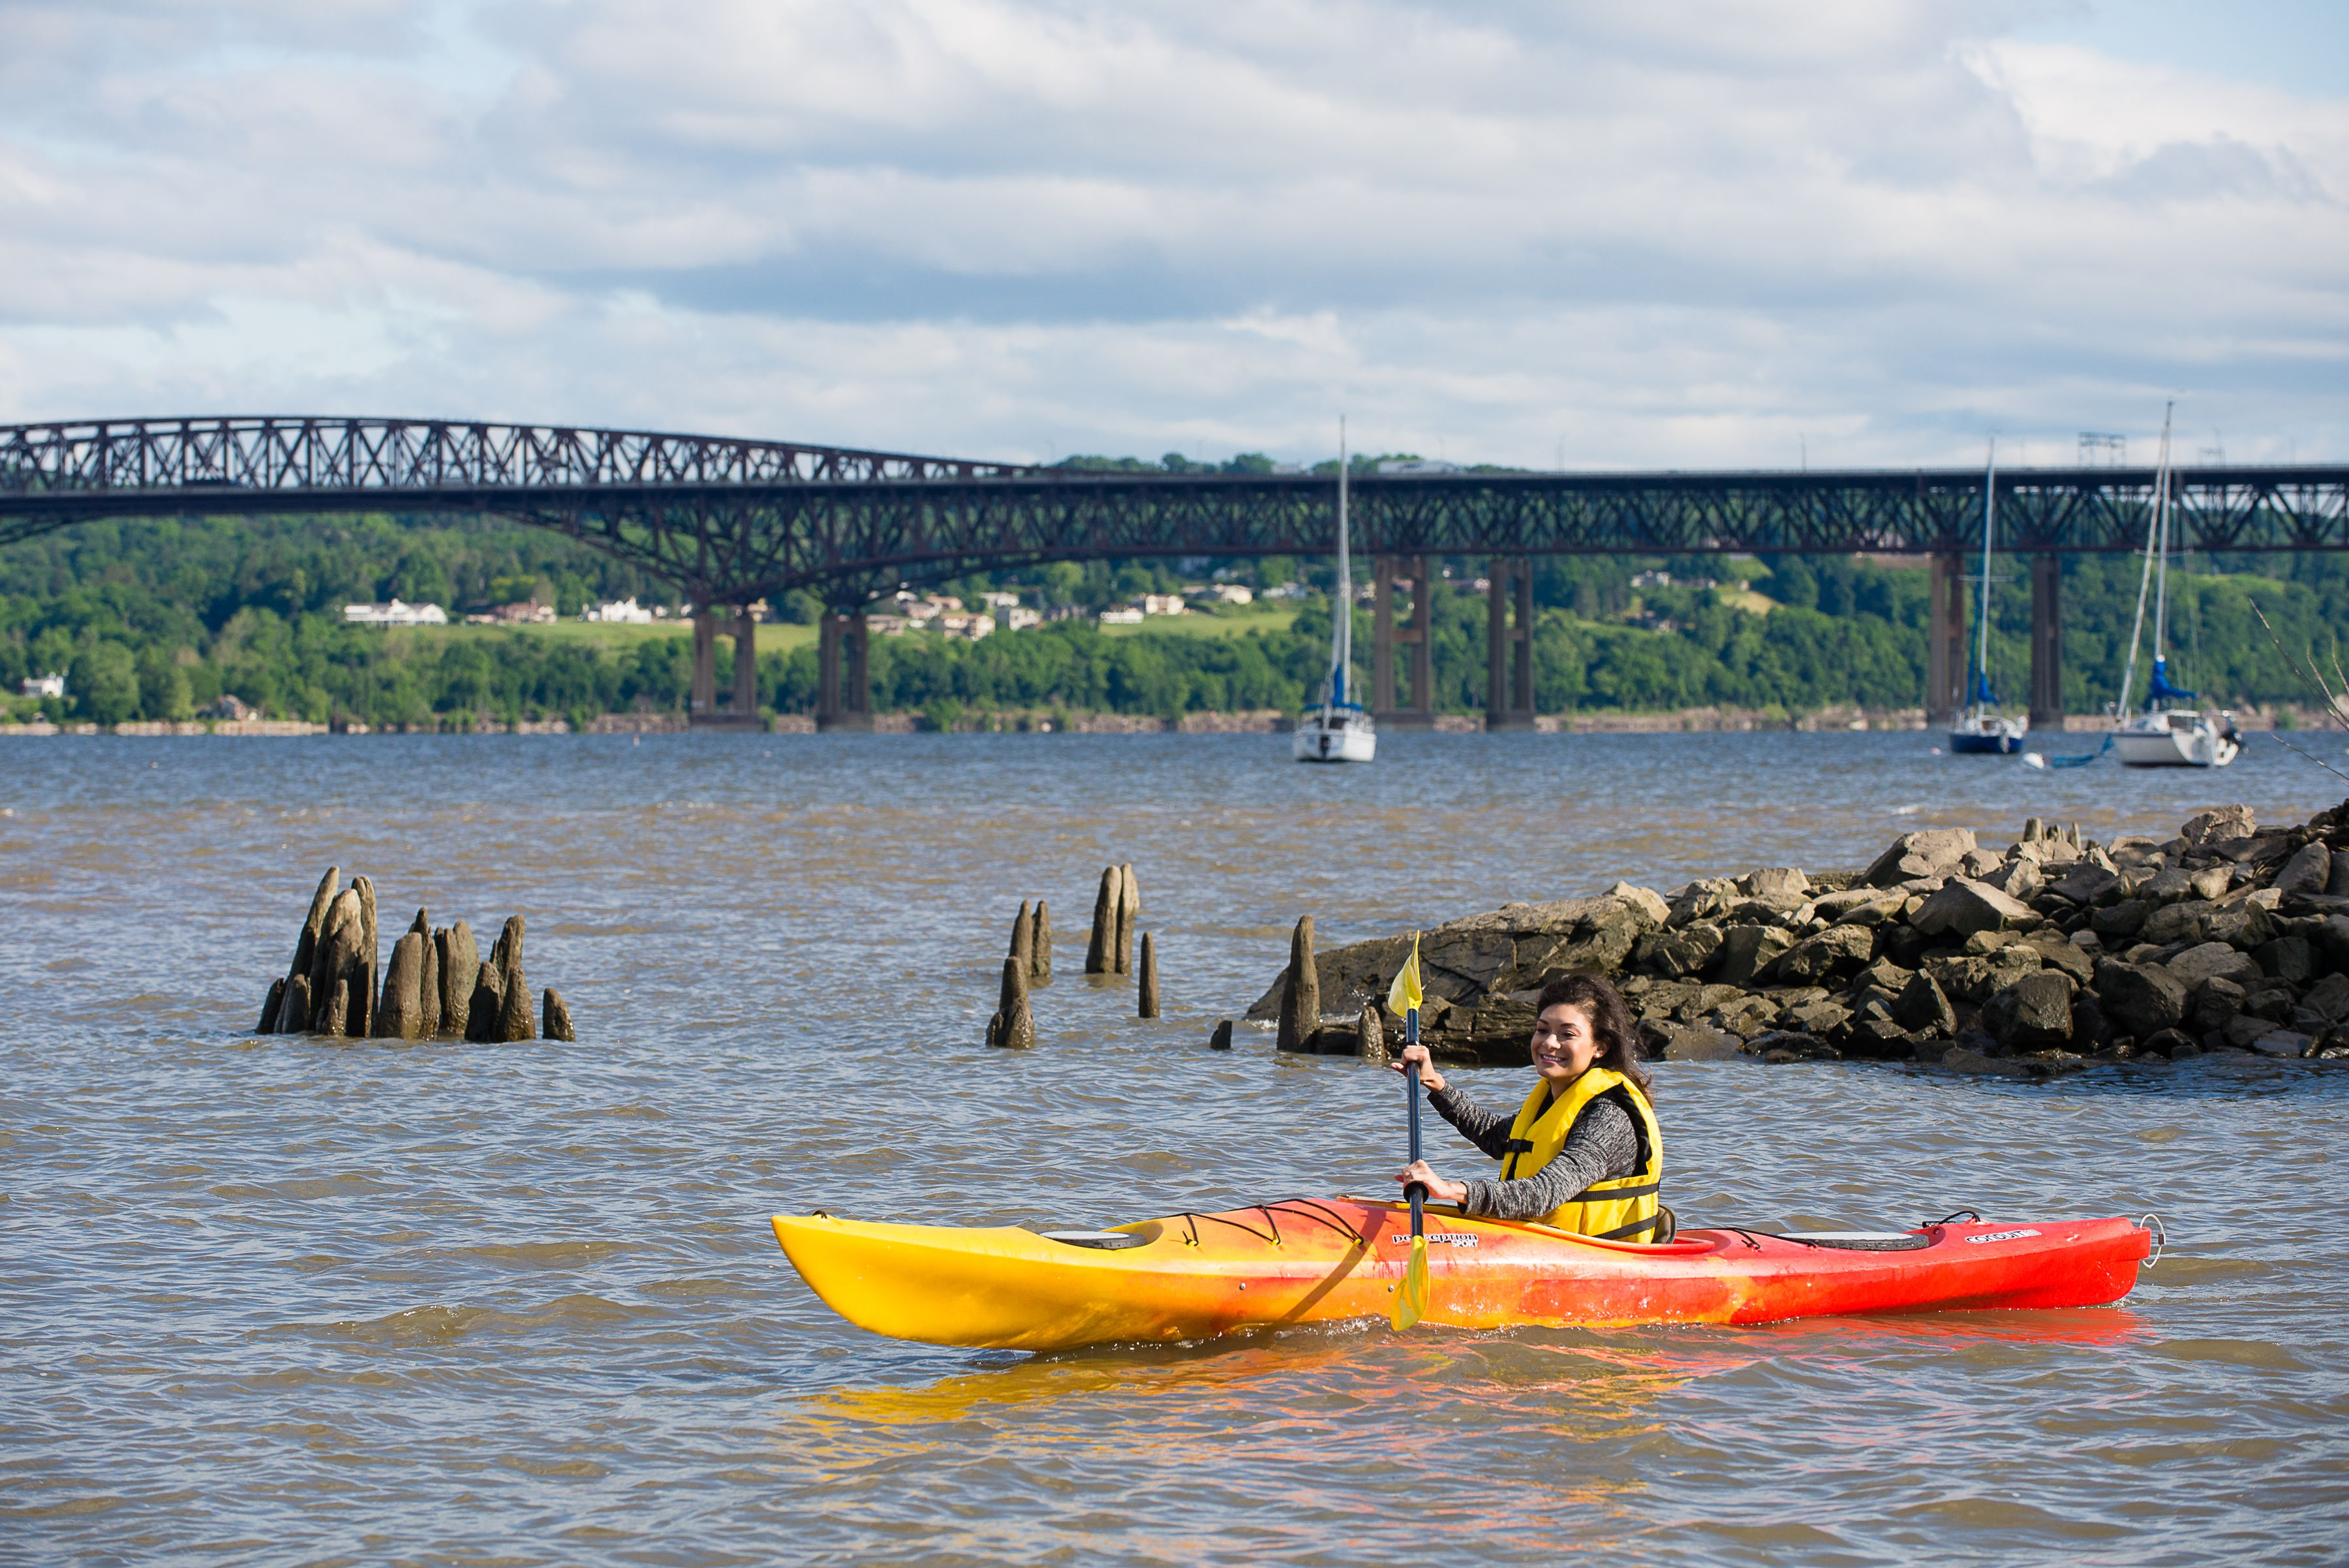 Top 12 Things to Do in Beacon, New York